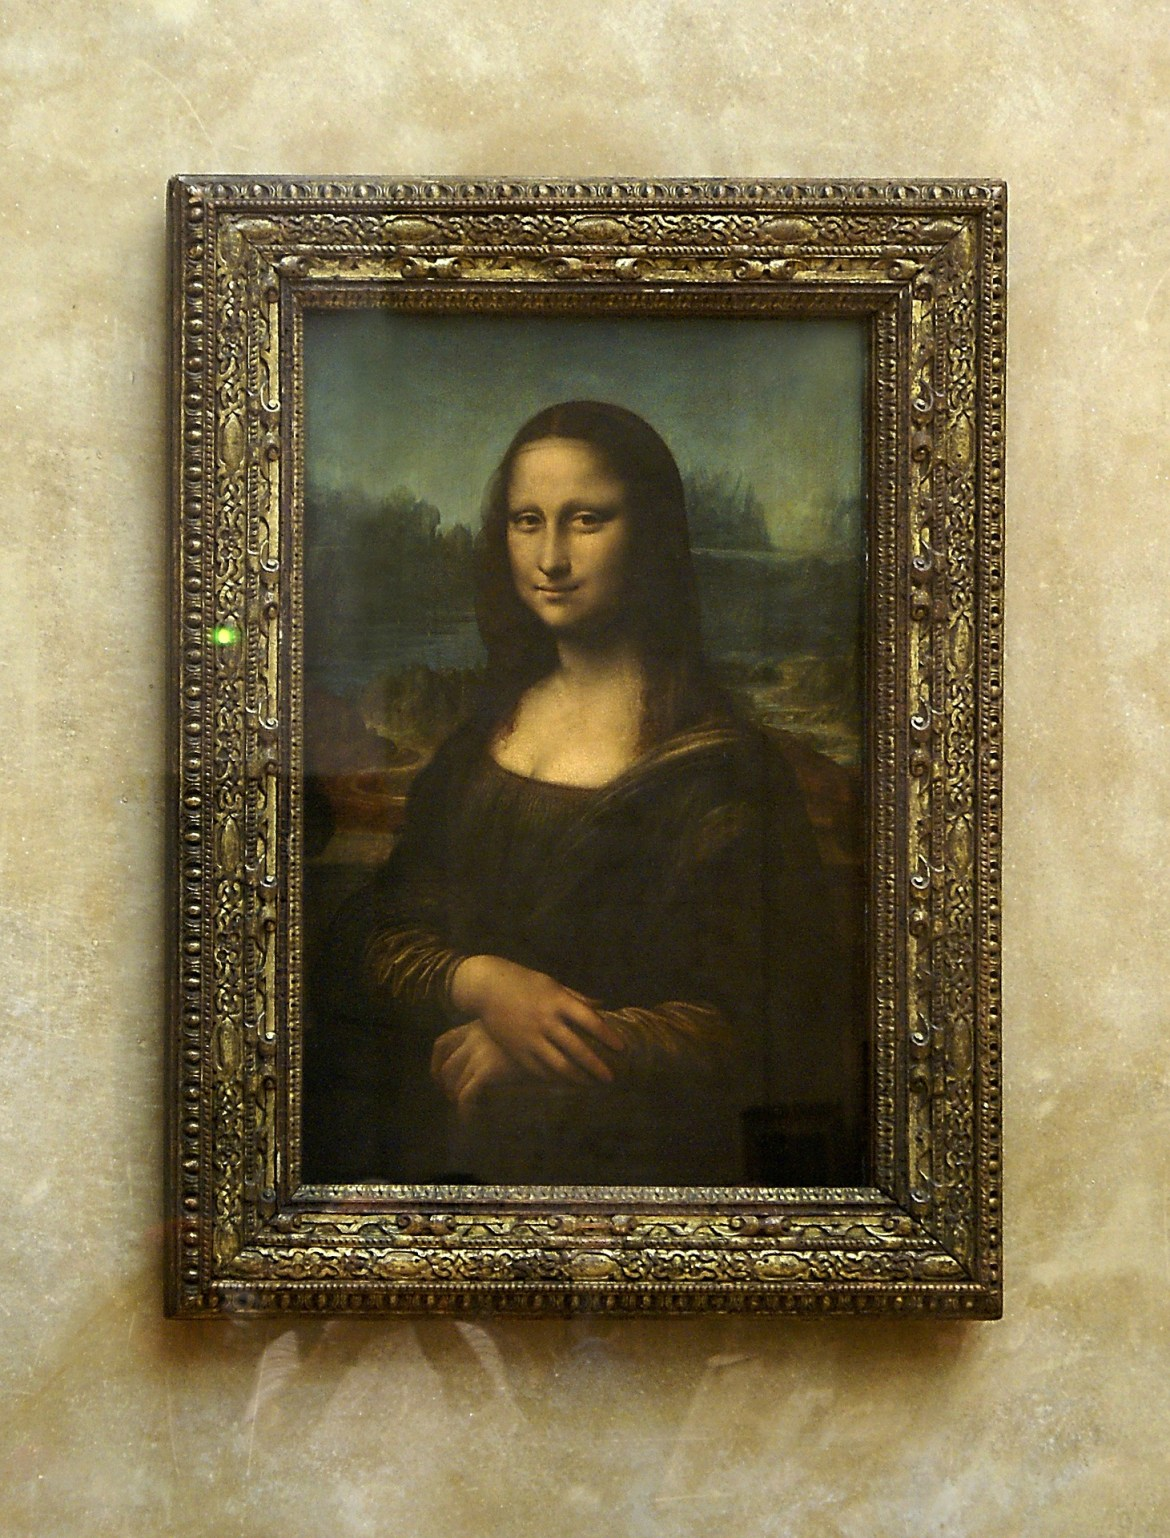 The Mona Lisa on a wall - proper storage for art